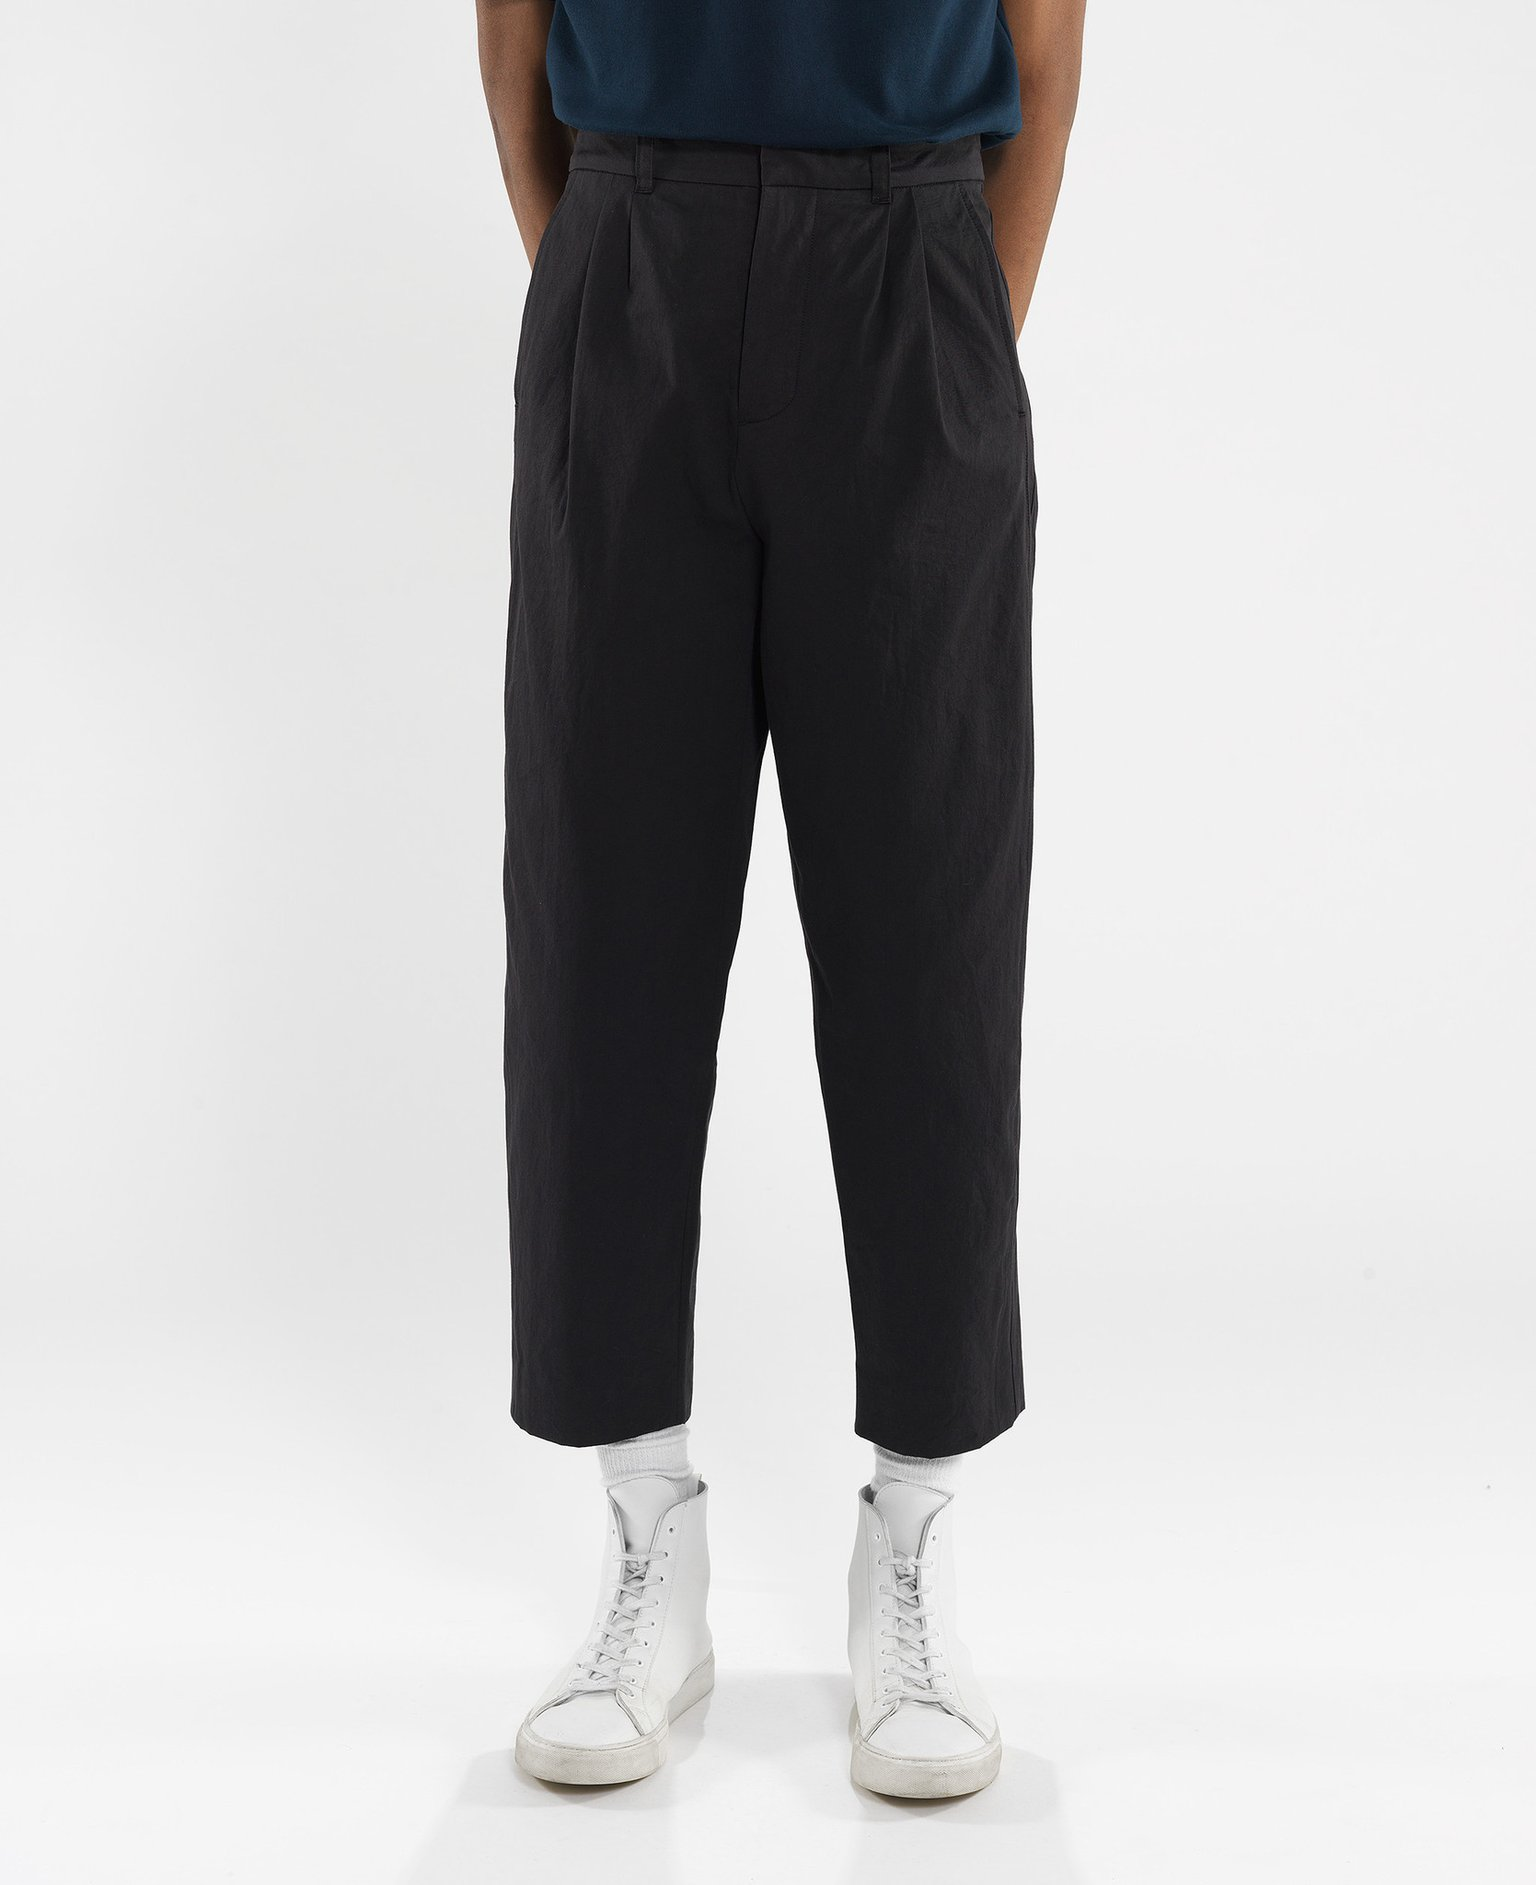 bottoms up - Pleated trousers in 100% GOTS-certified organic cotton gabardine imported from japan. Fanmail. $140